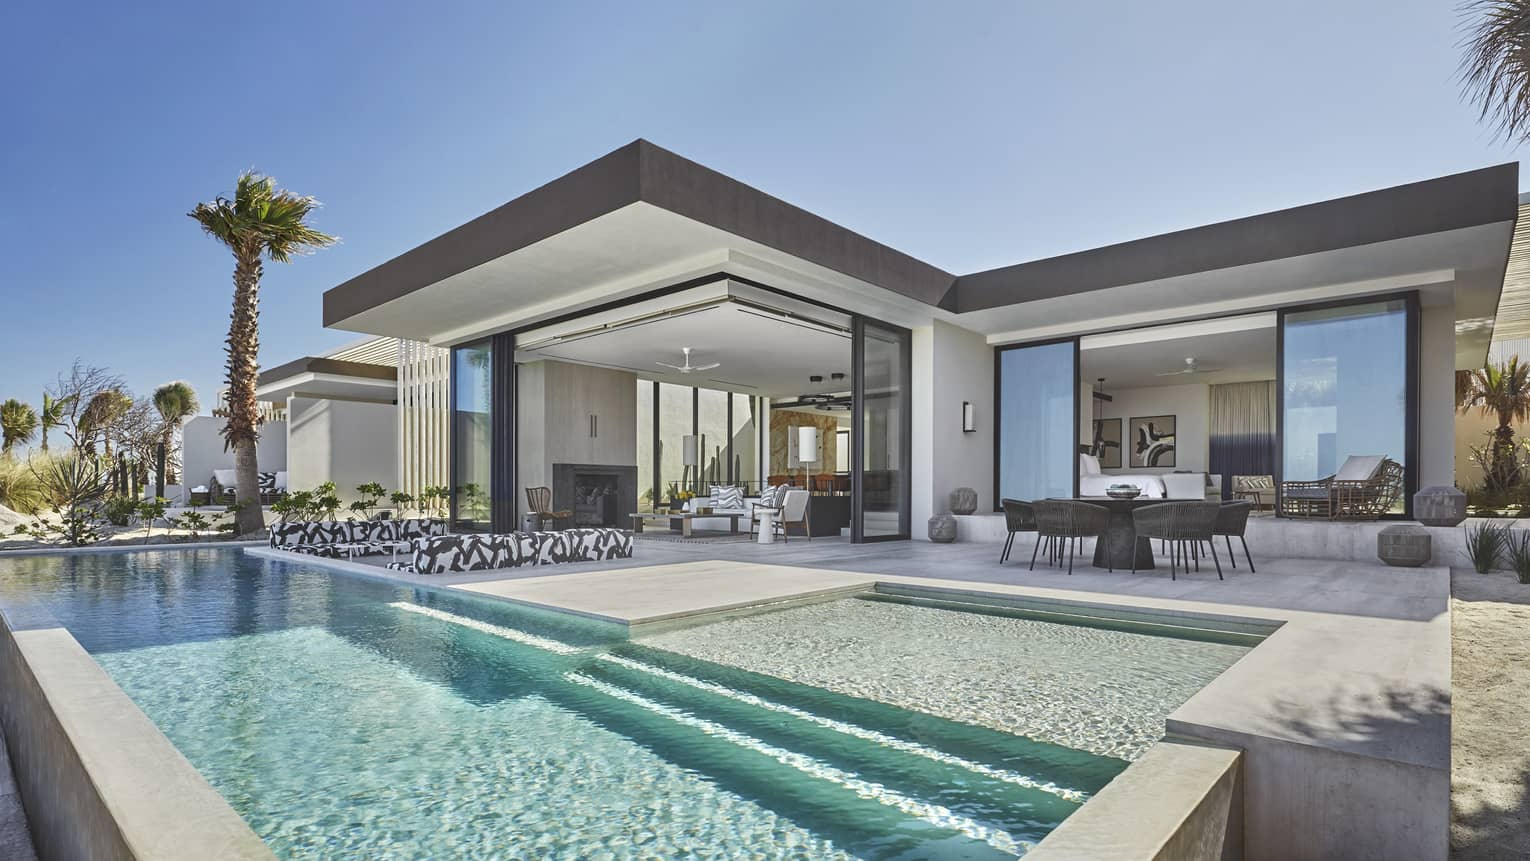 Modern outdoor terrace of presidential suite, dining table, long rectangular pool